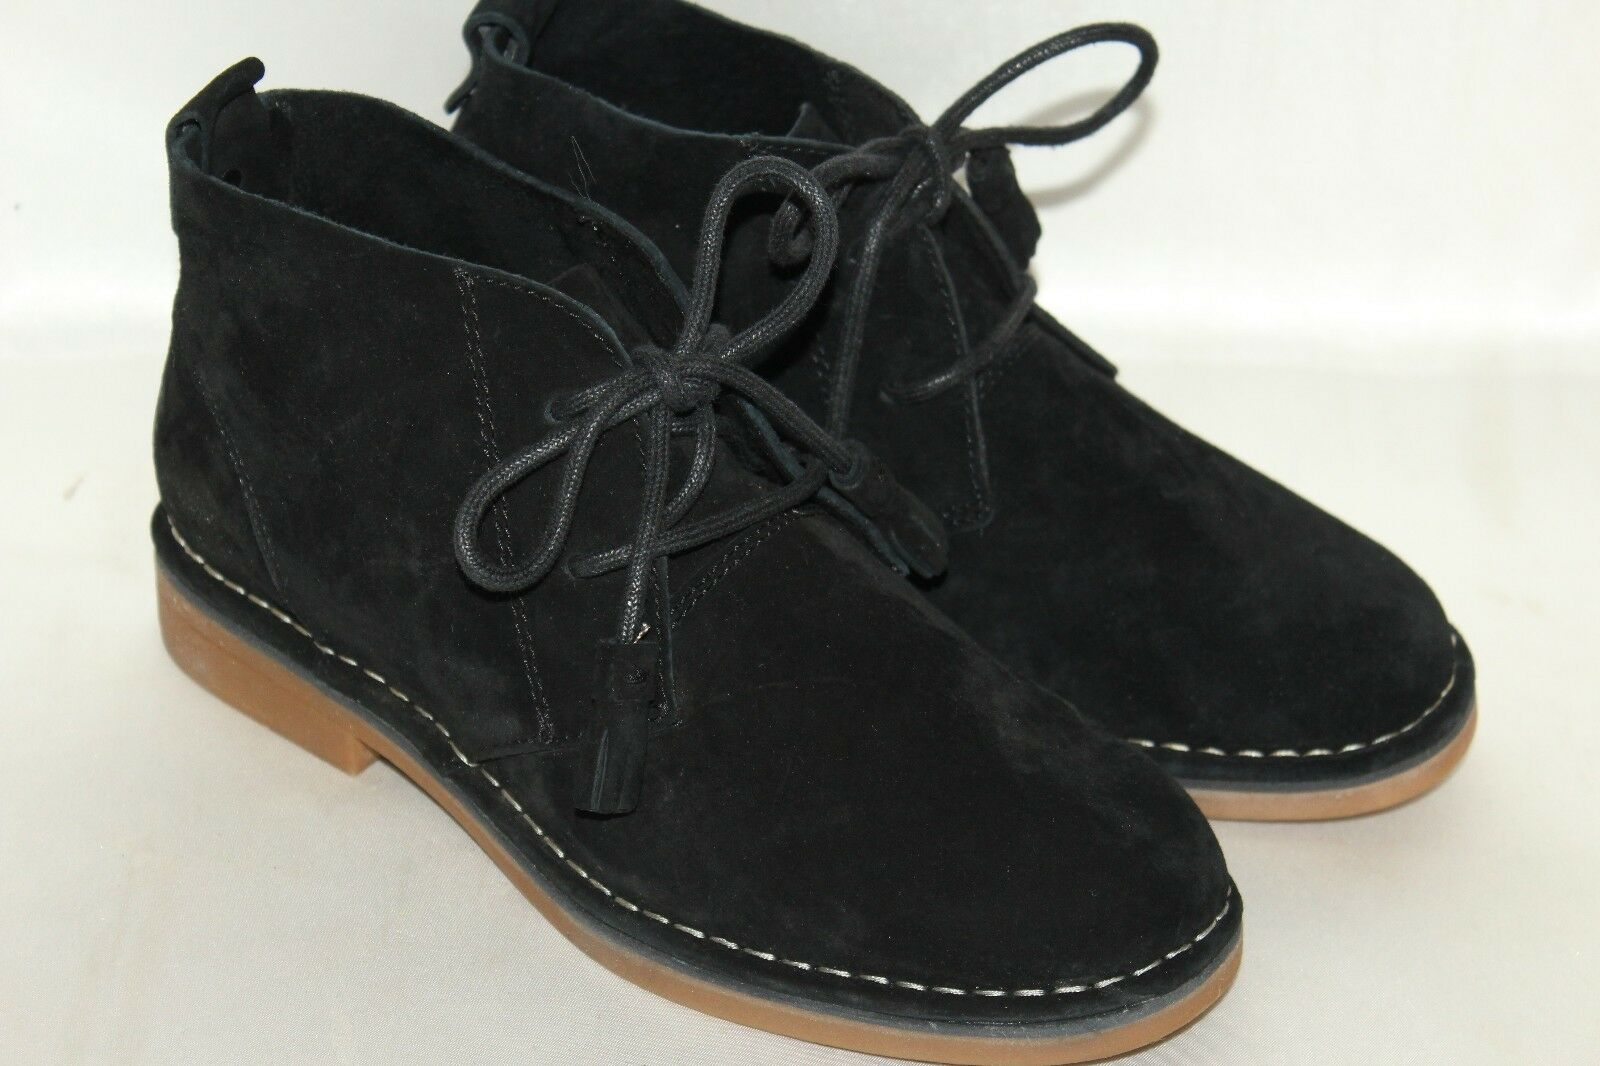 HUSH PUPPIES Black Suede Leather Lace Up Desert Ankle Chukka Boots Sz 6